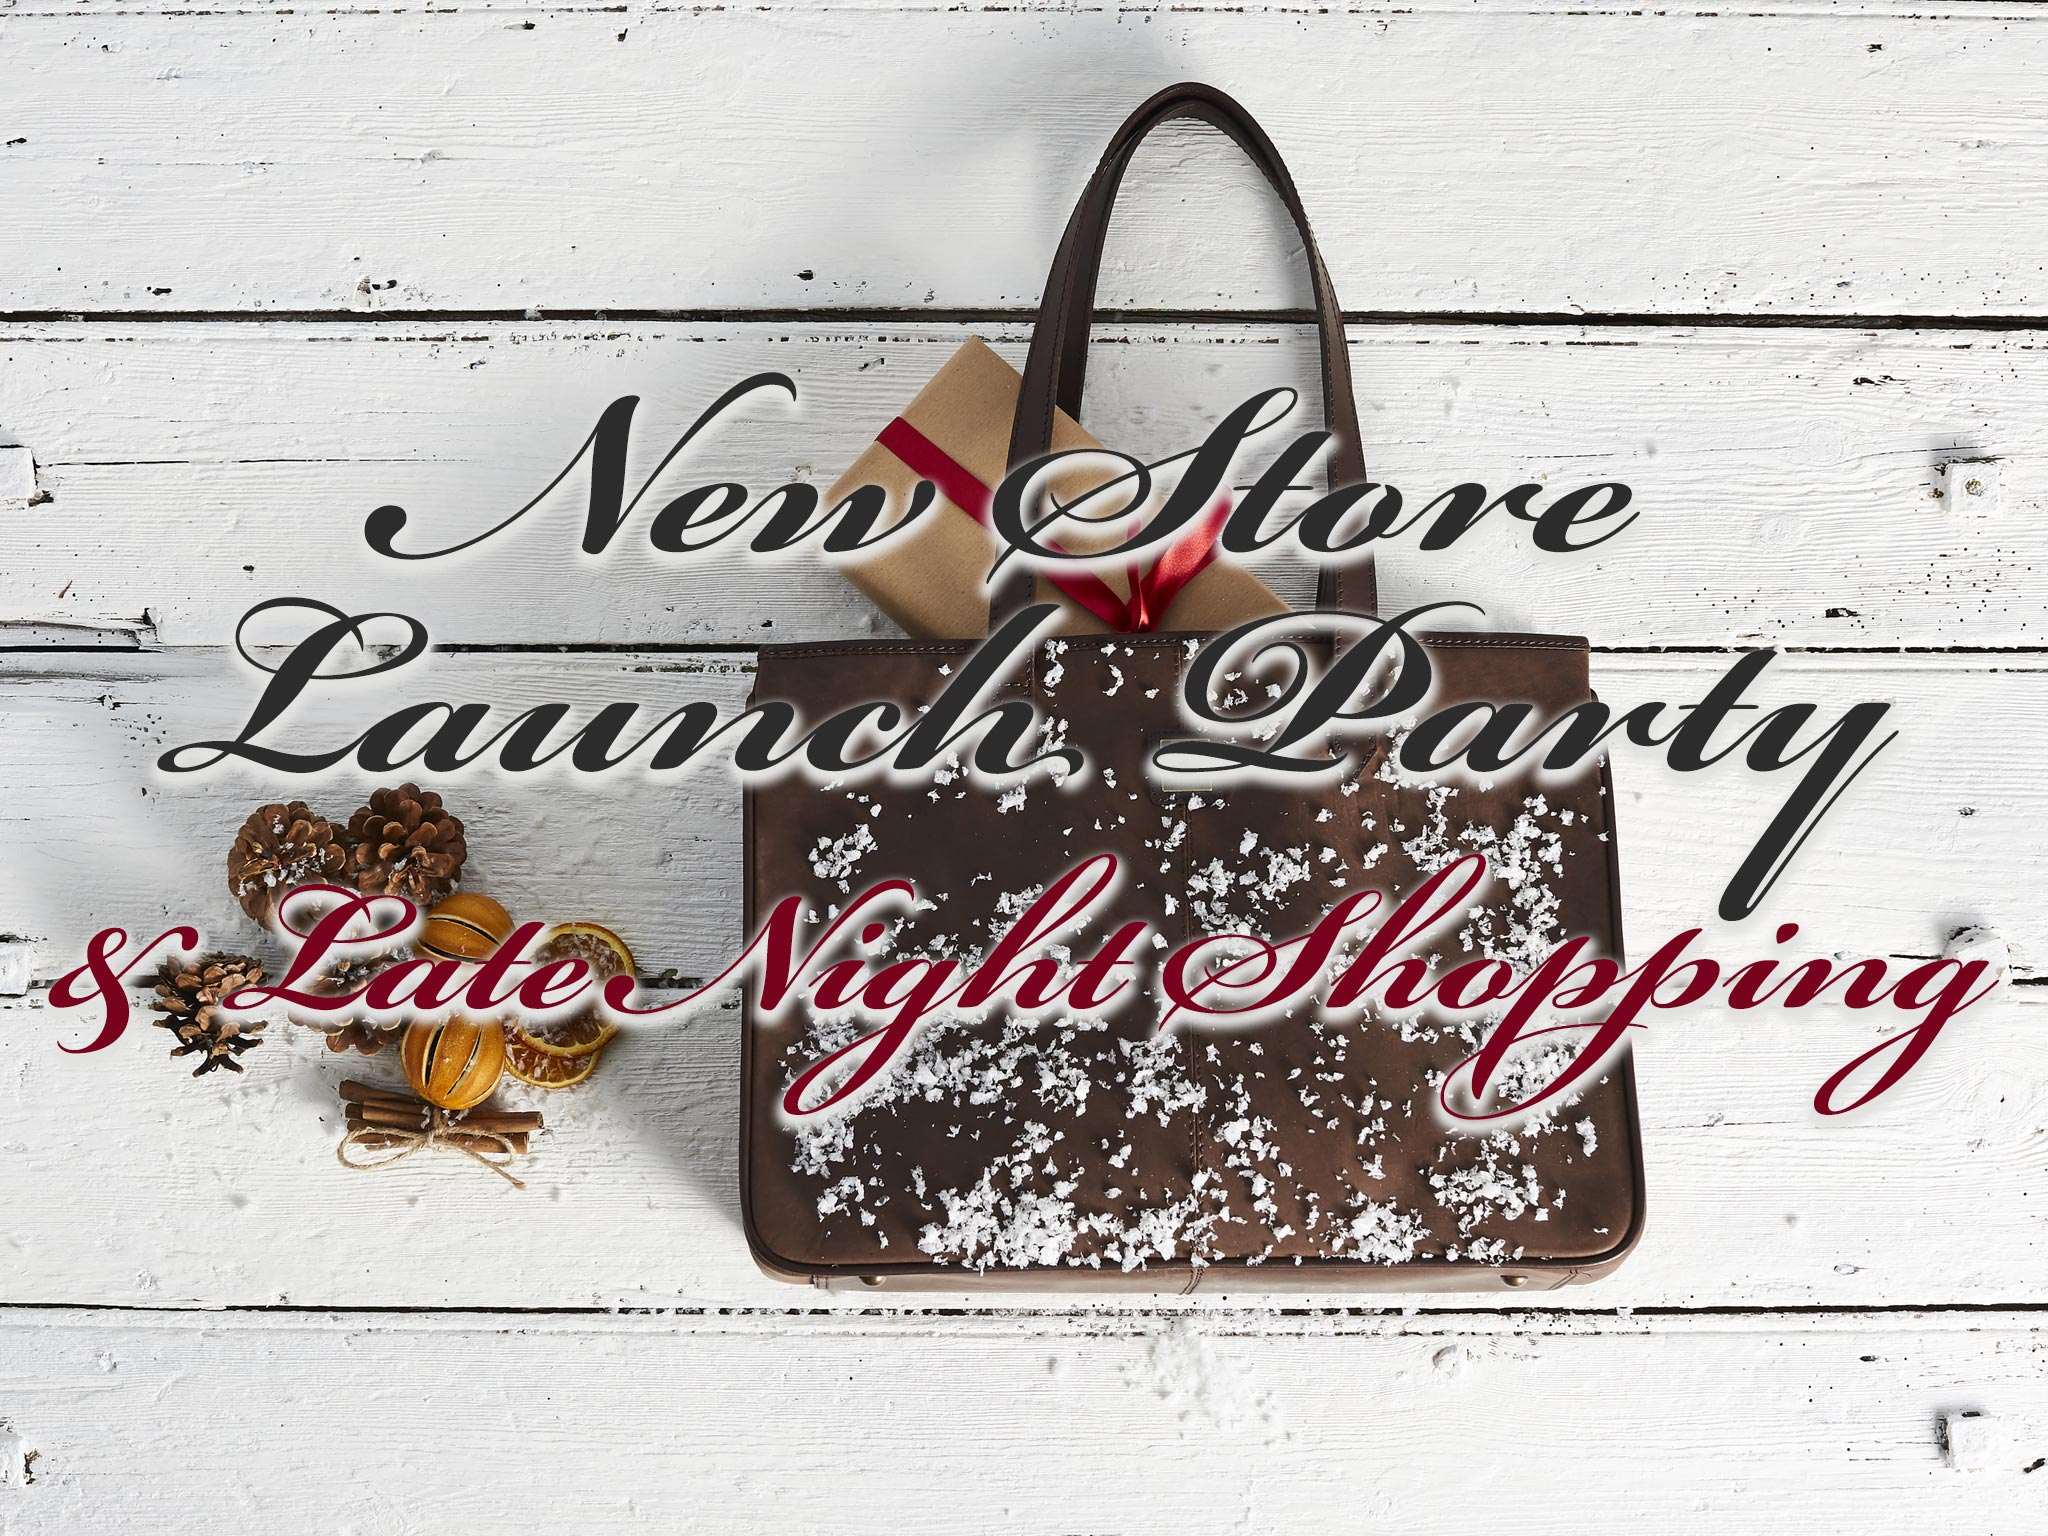 New Store Launch Party & Late Night Shopping